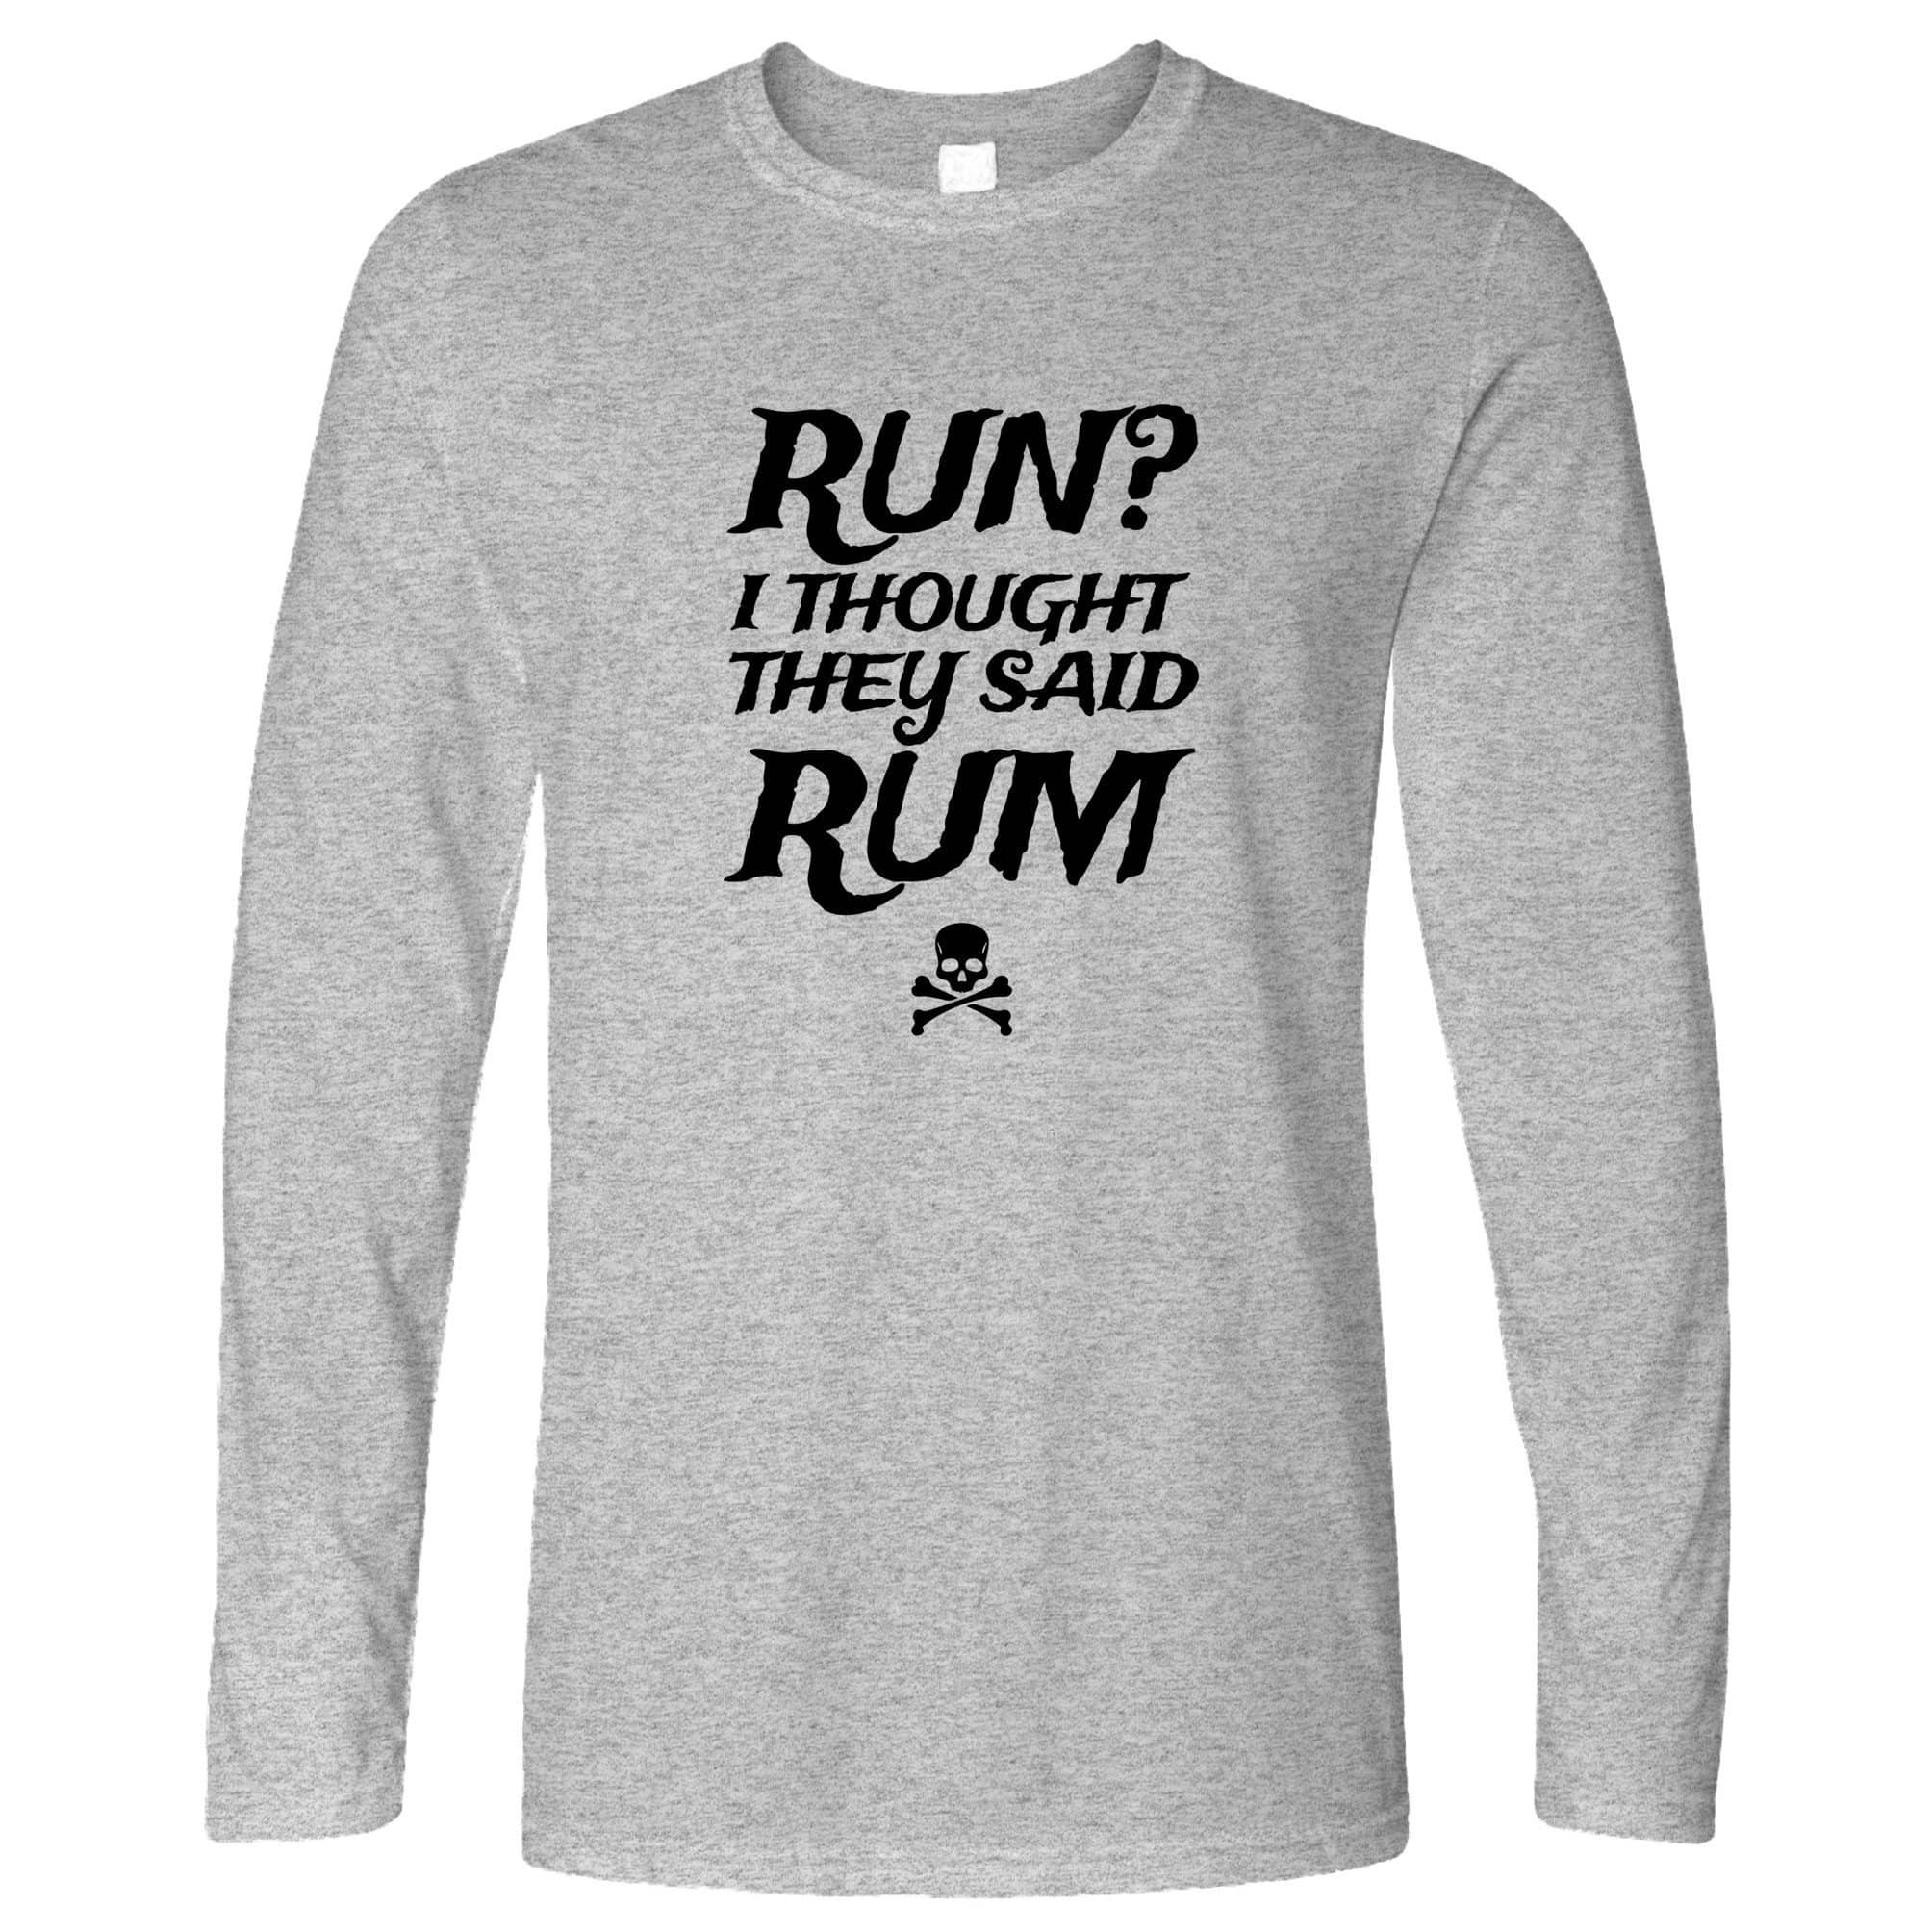 Novelty Long Sleeve Run? I Thought They Said Rum Slogan T-Shirt